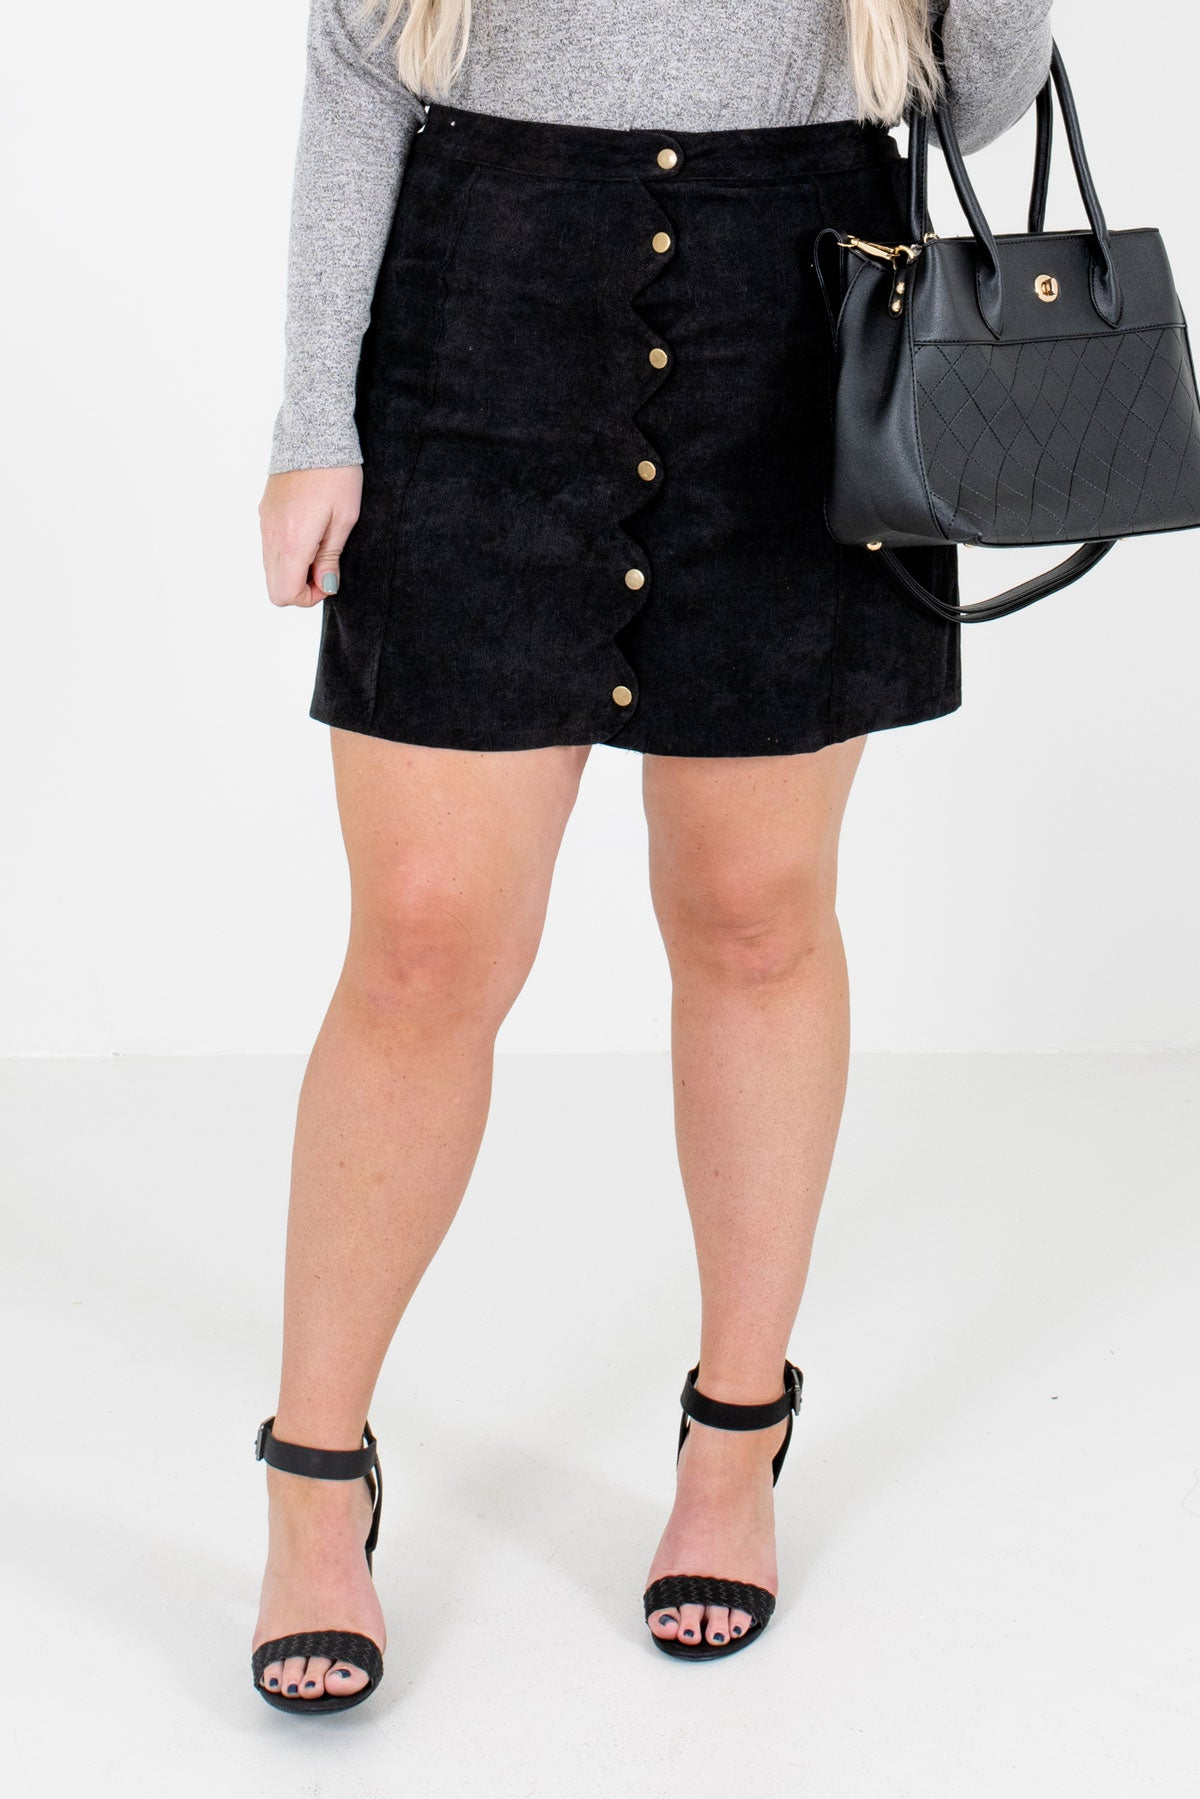 Black High-Quality Corduroy Material Boutique Mini Skirts for Women